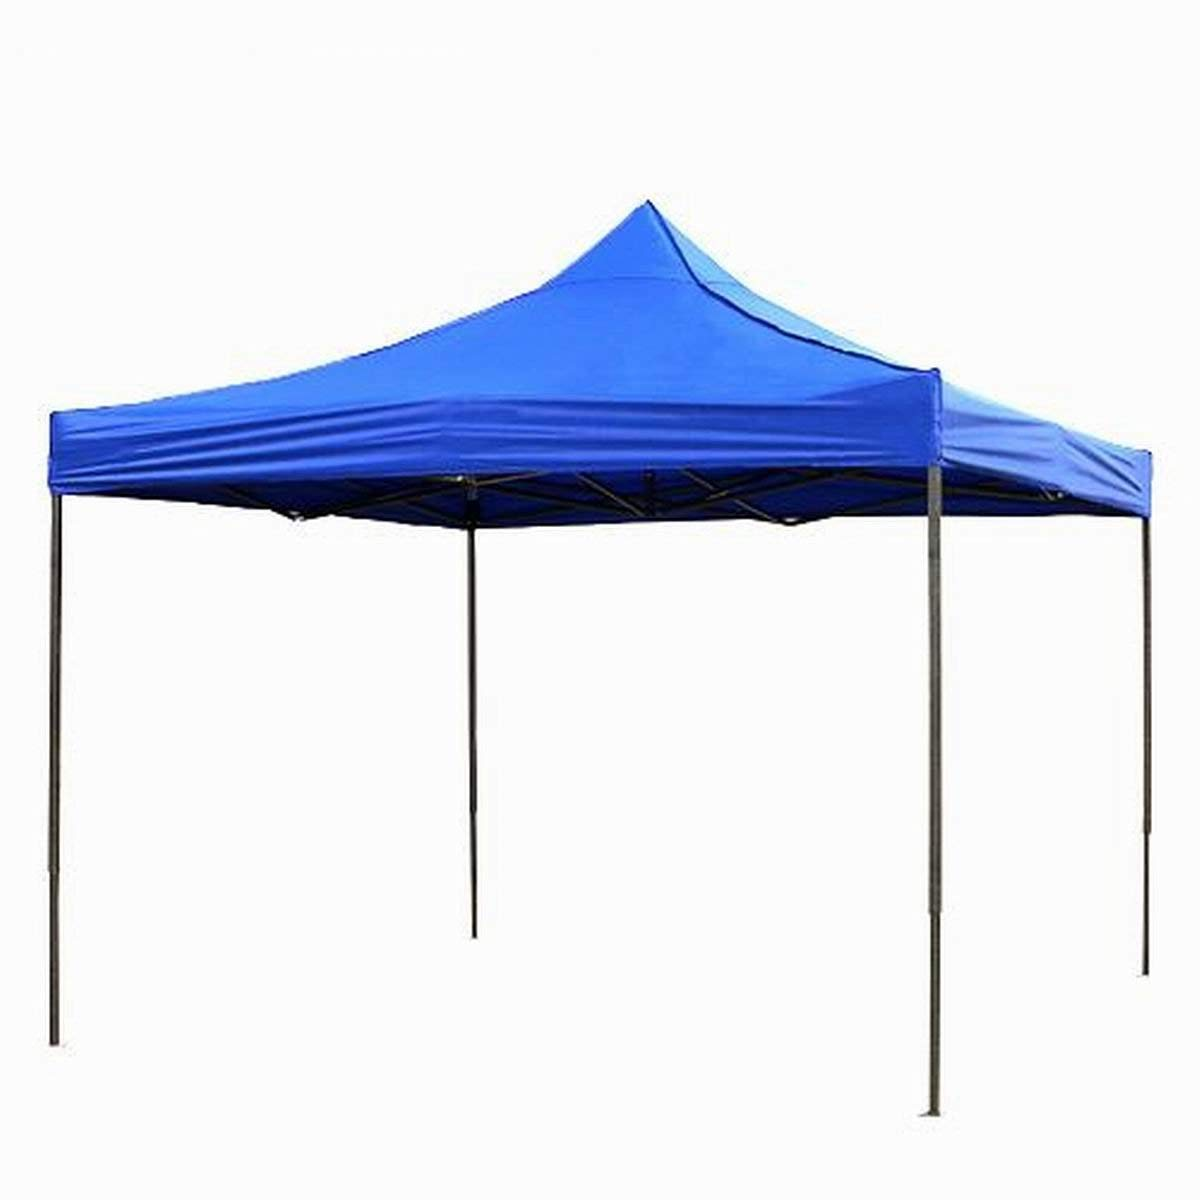 portable gazebo amazon.com : qisan folding canopy lightweight gazebos outdoor pop up  portable NYIELRR